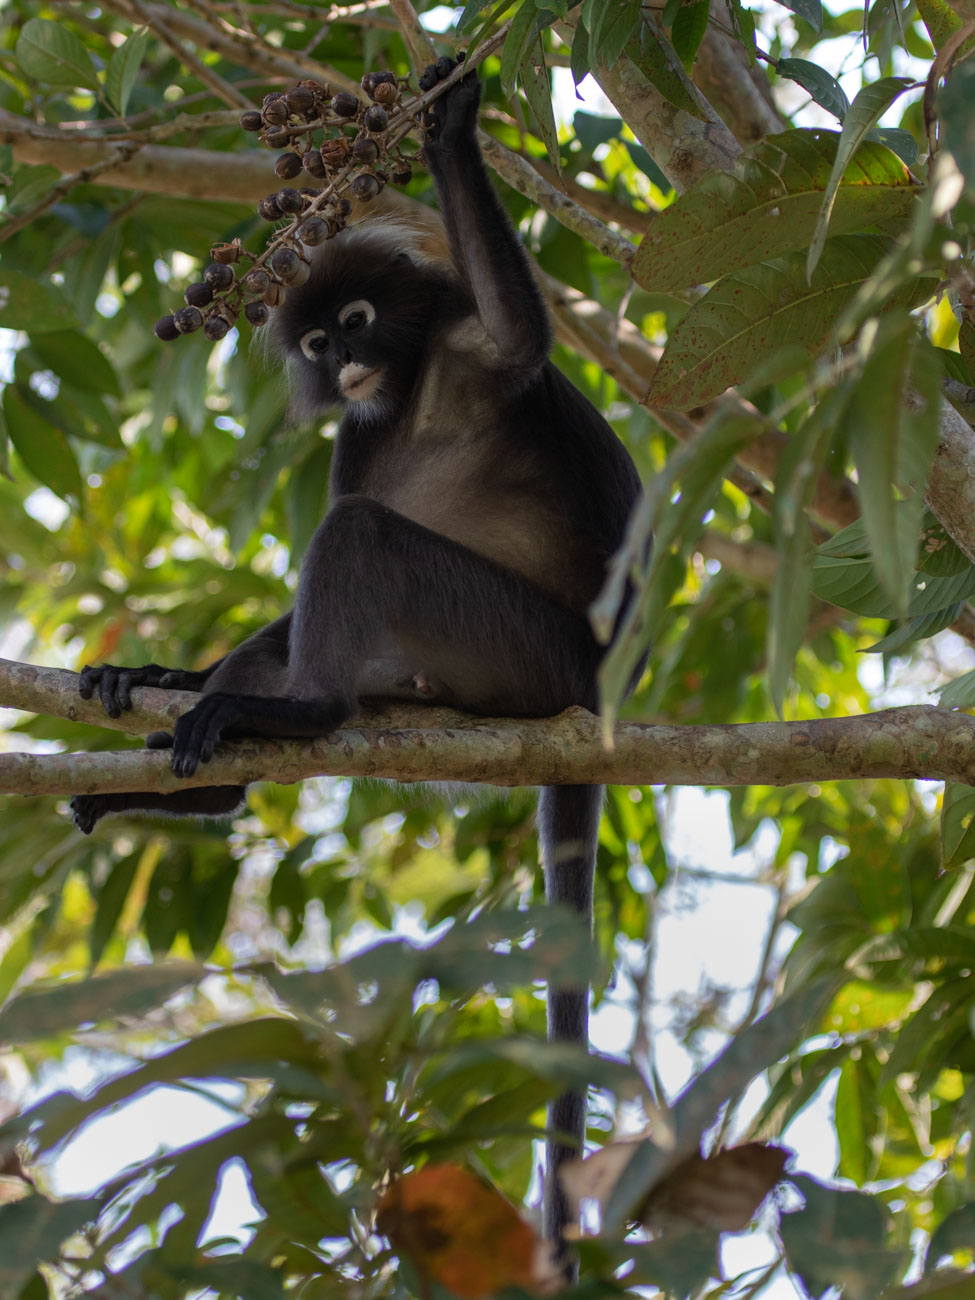 Dusky Leaf Monkey in Penang Botanic Gardens - Things to see and do in Penang